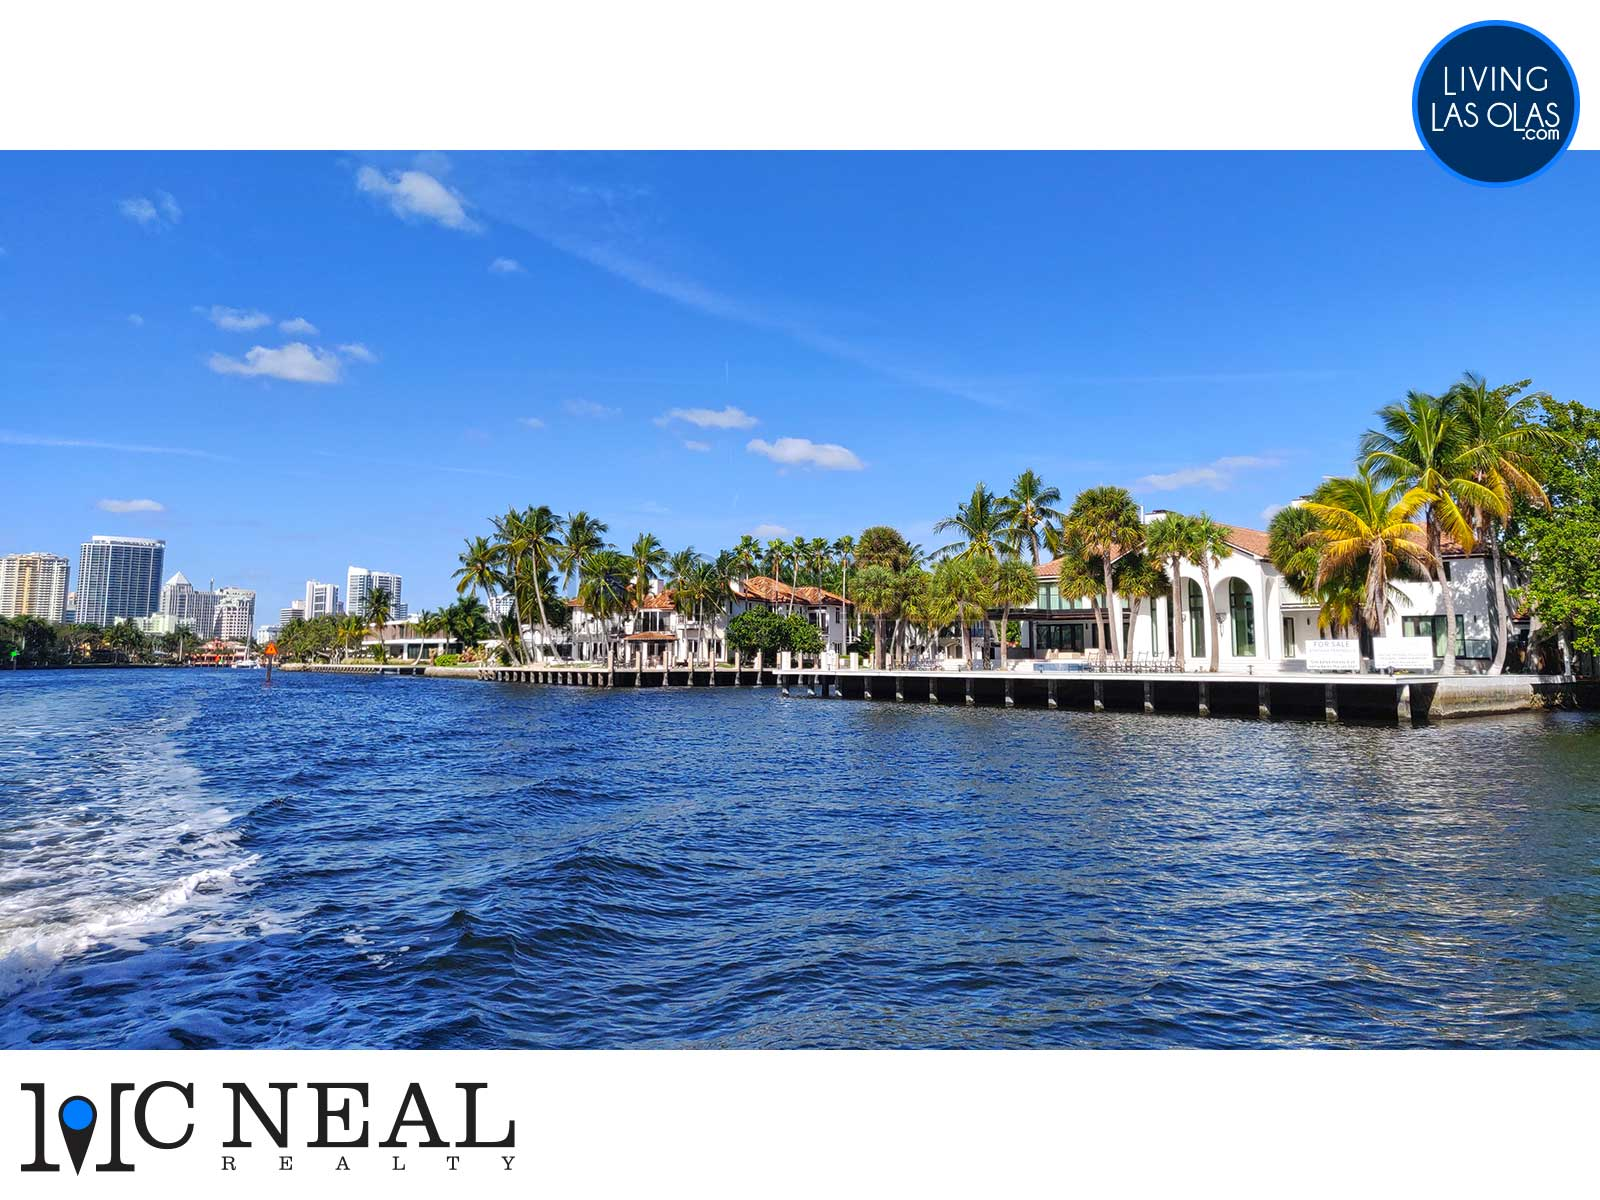 Las Olas Isles Homes Real Estate 08